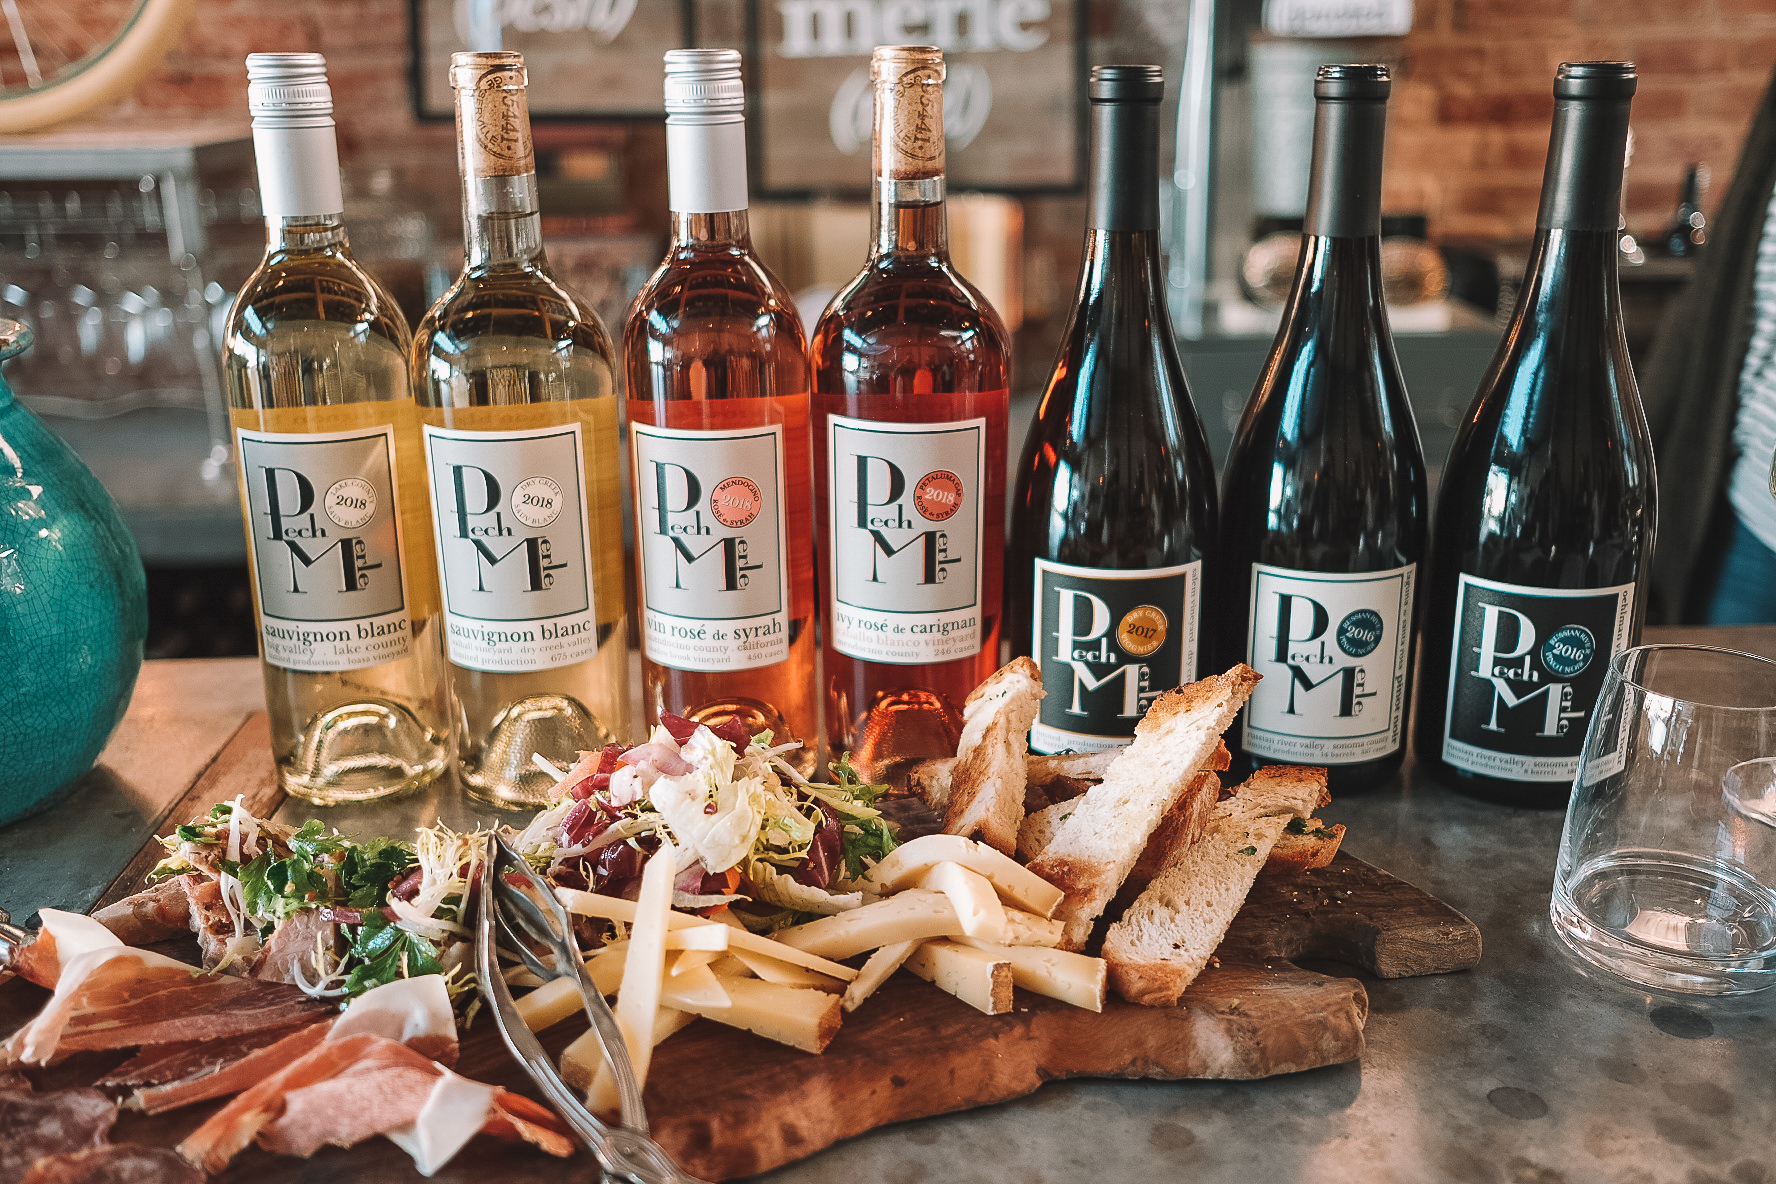 Pech Merle wine and wine bottles lined up behind a delicious cheese and charcuterie board